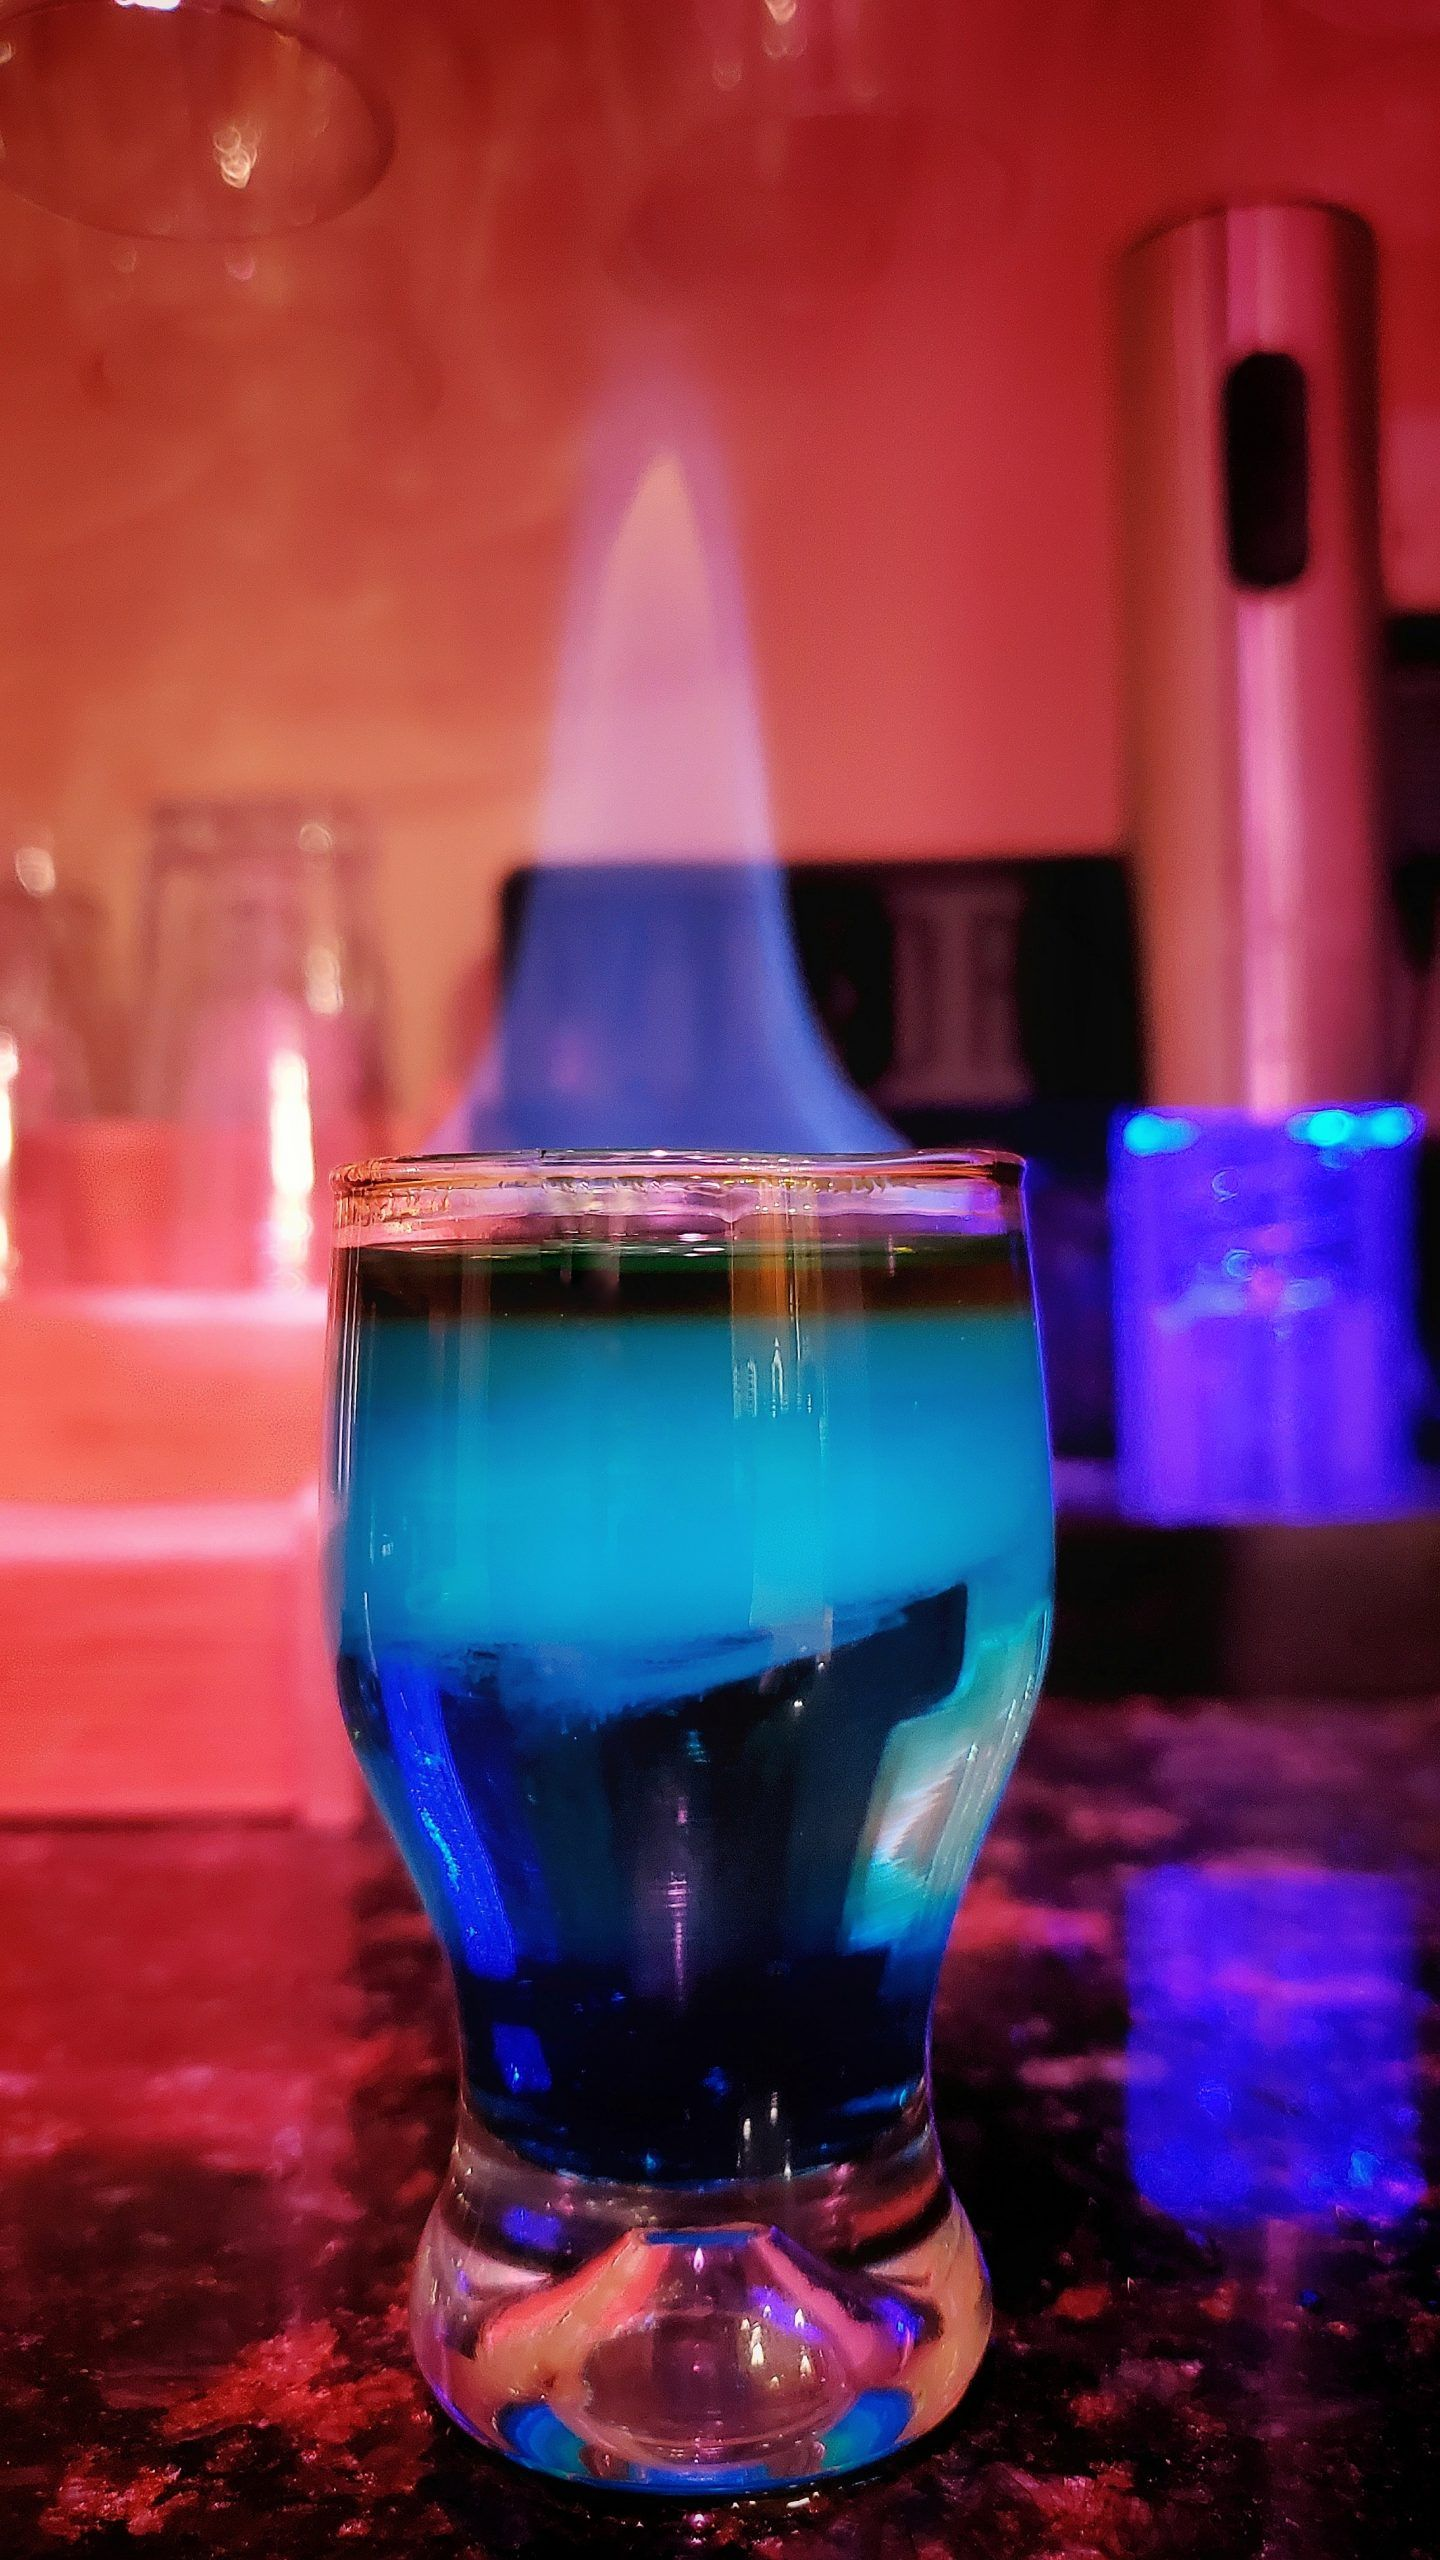 The Flaming Blue Shot